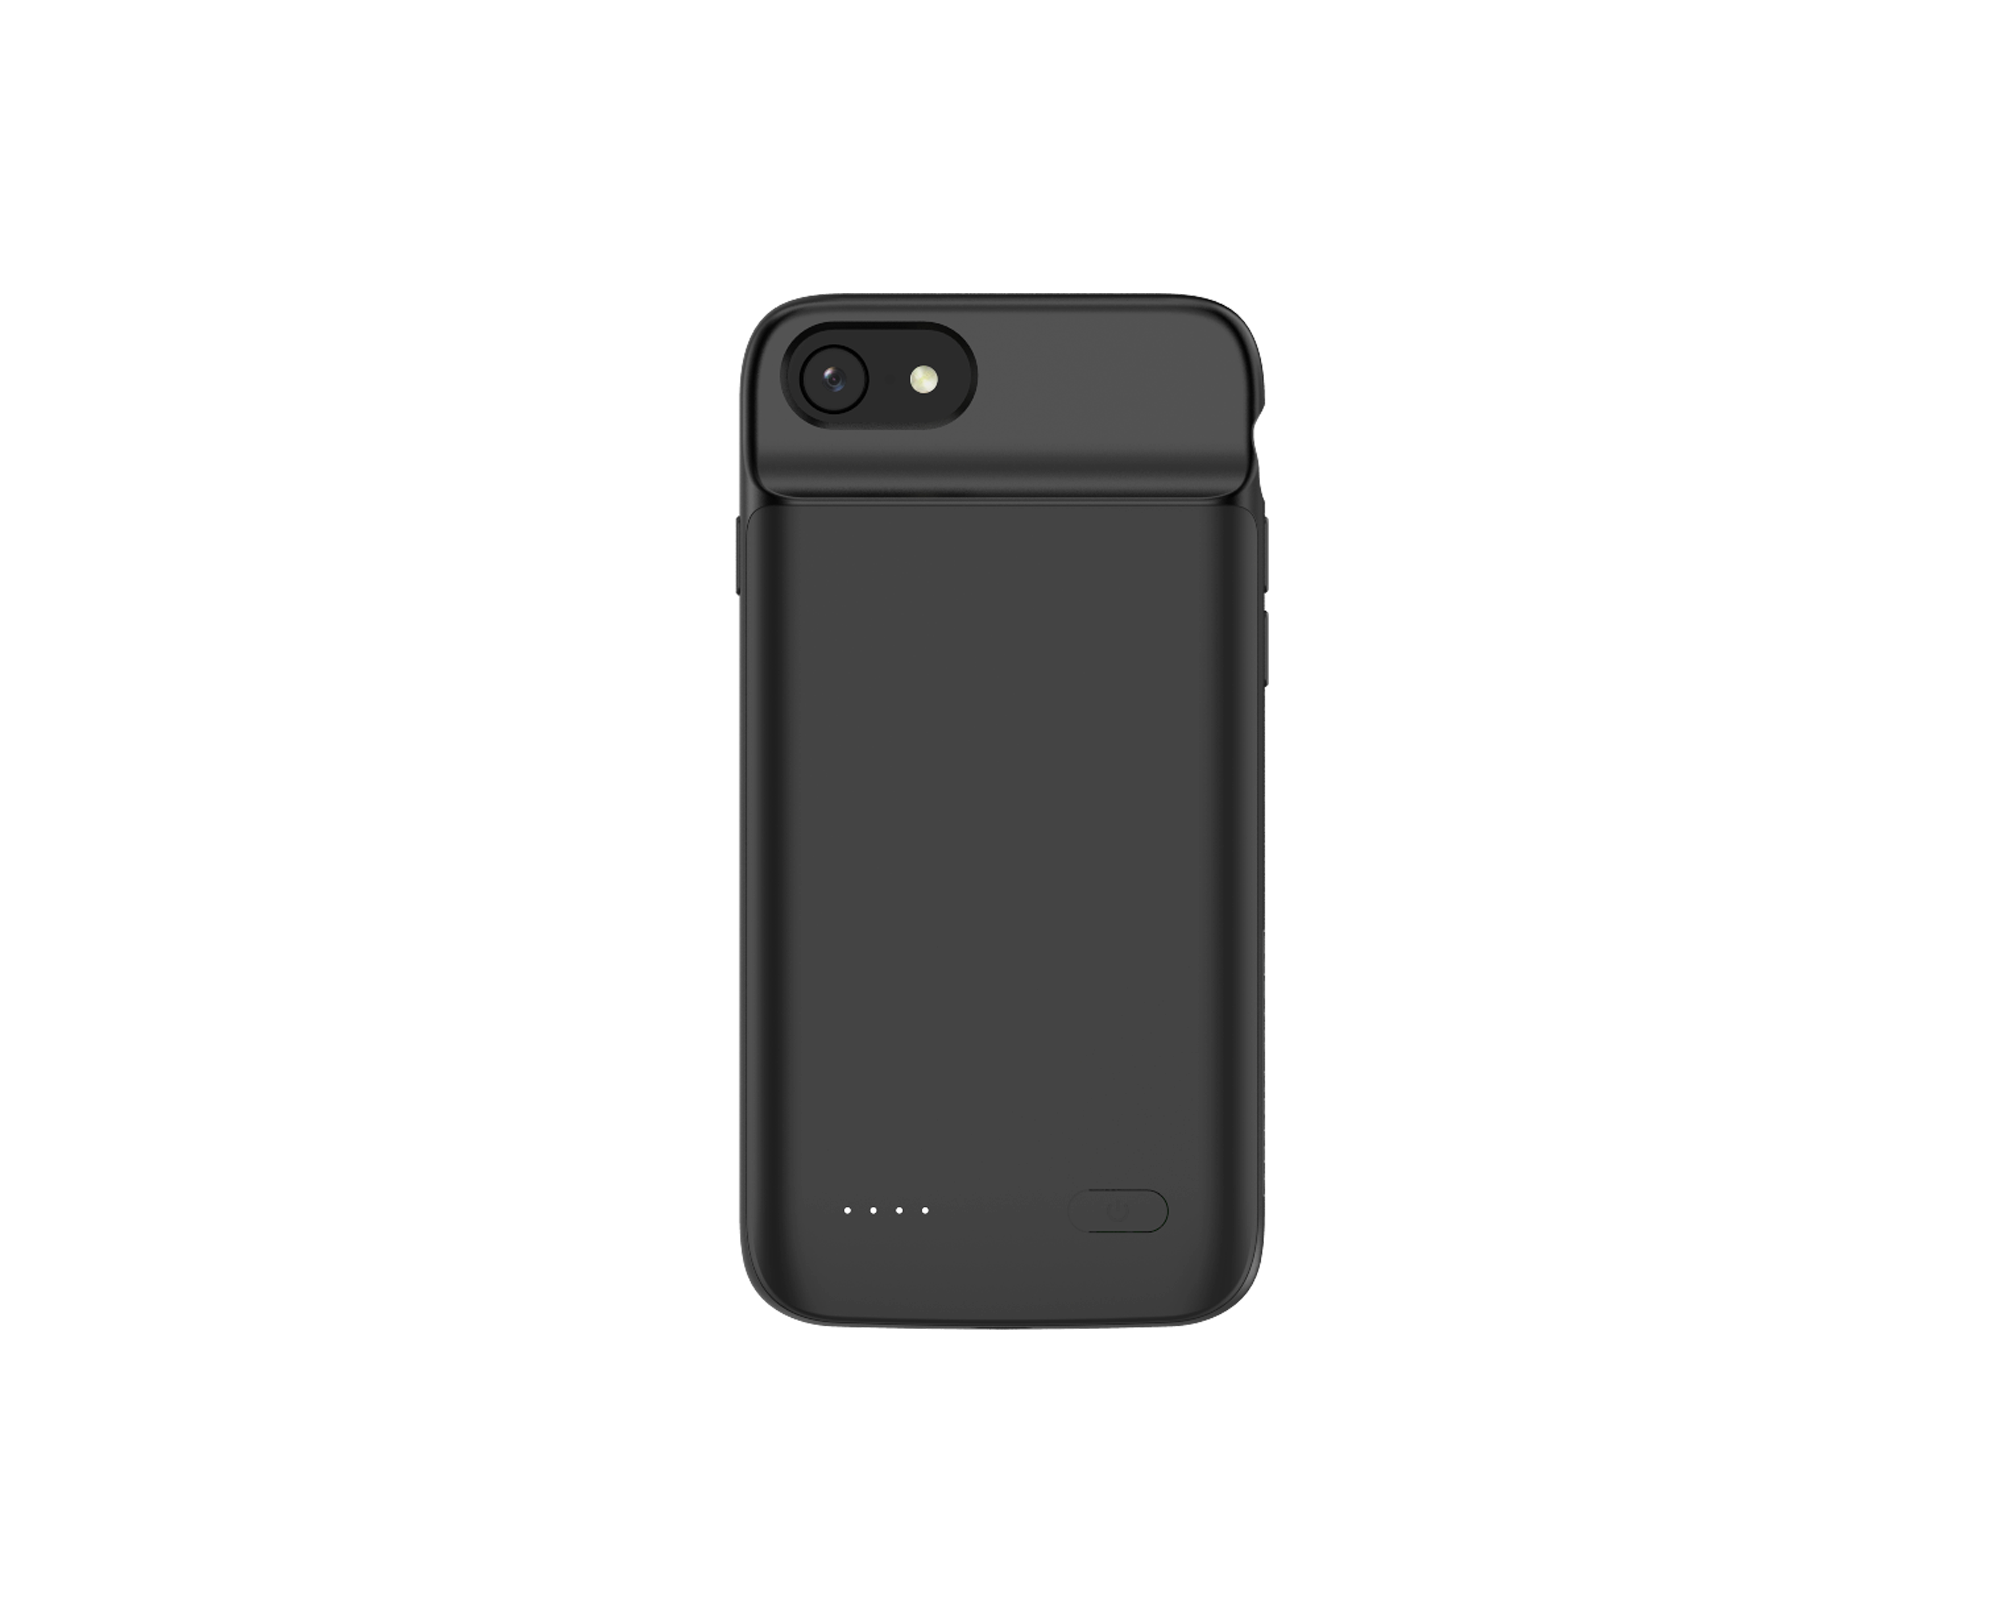 iPhone 6/6s/7/8/SE All Black